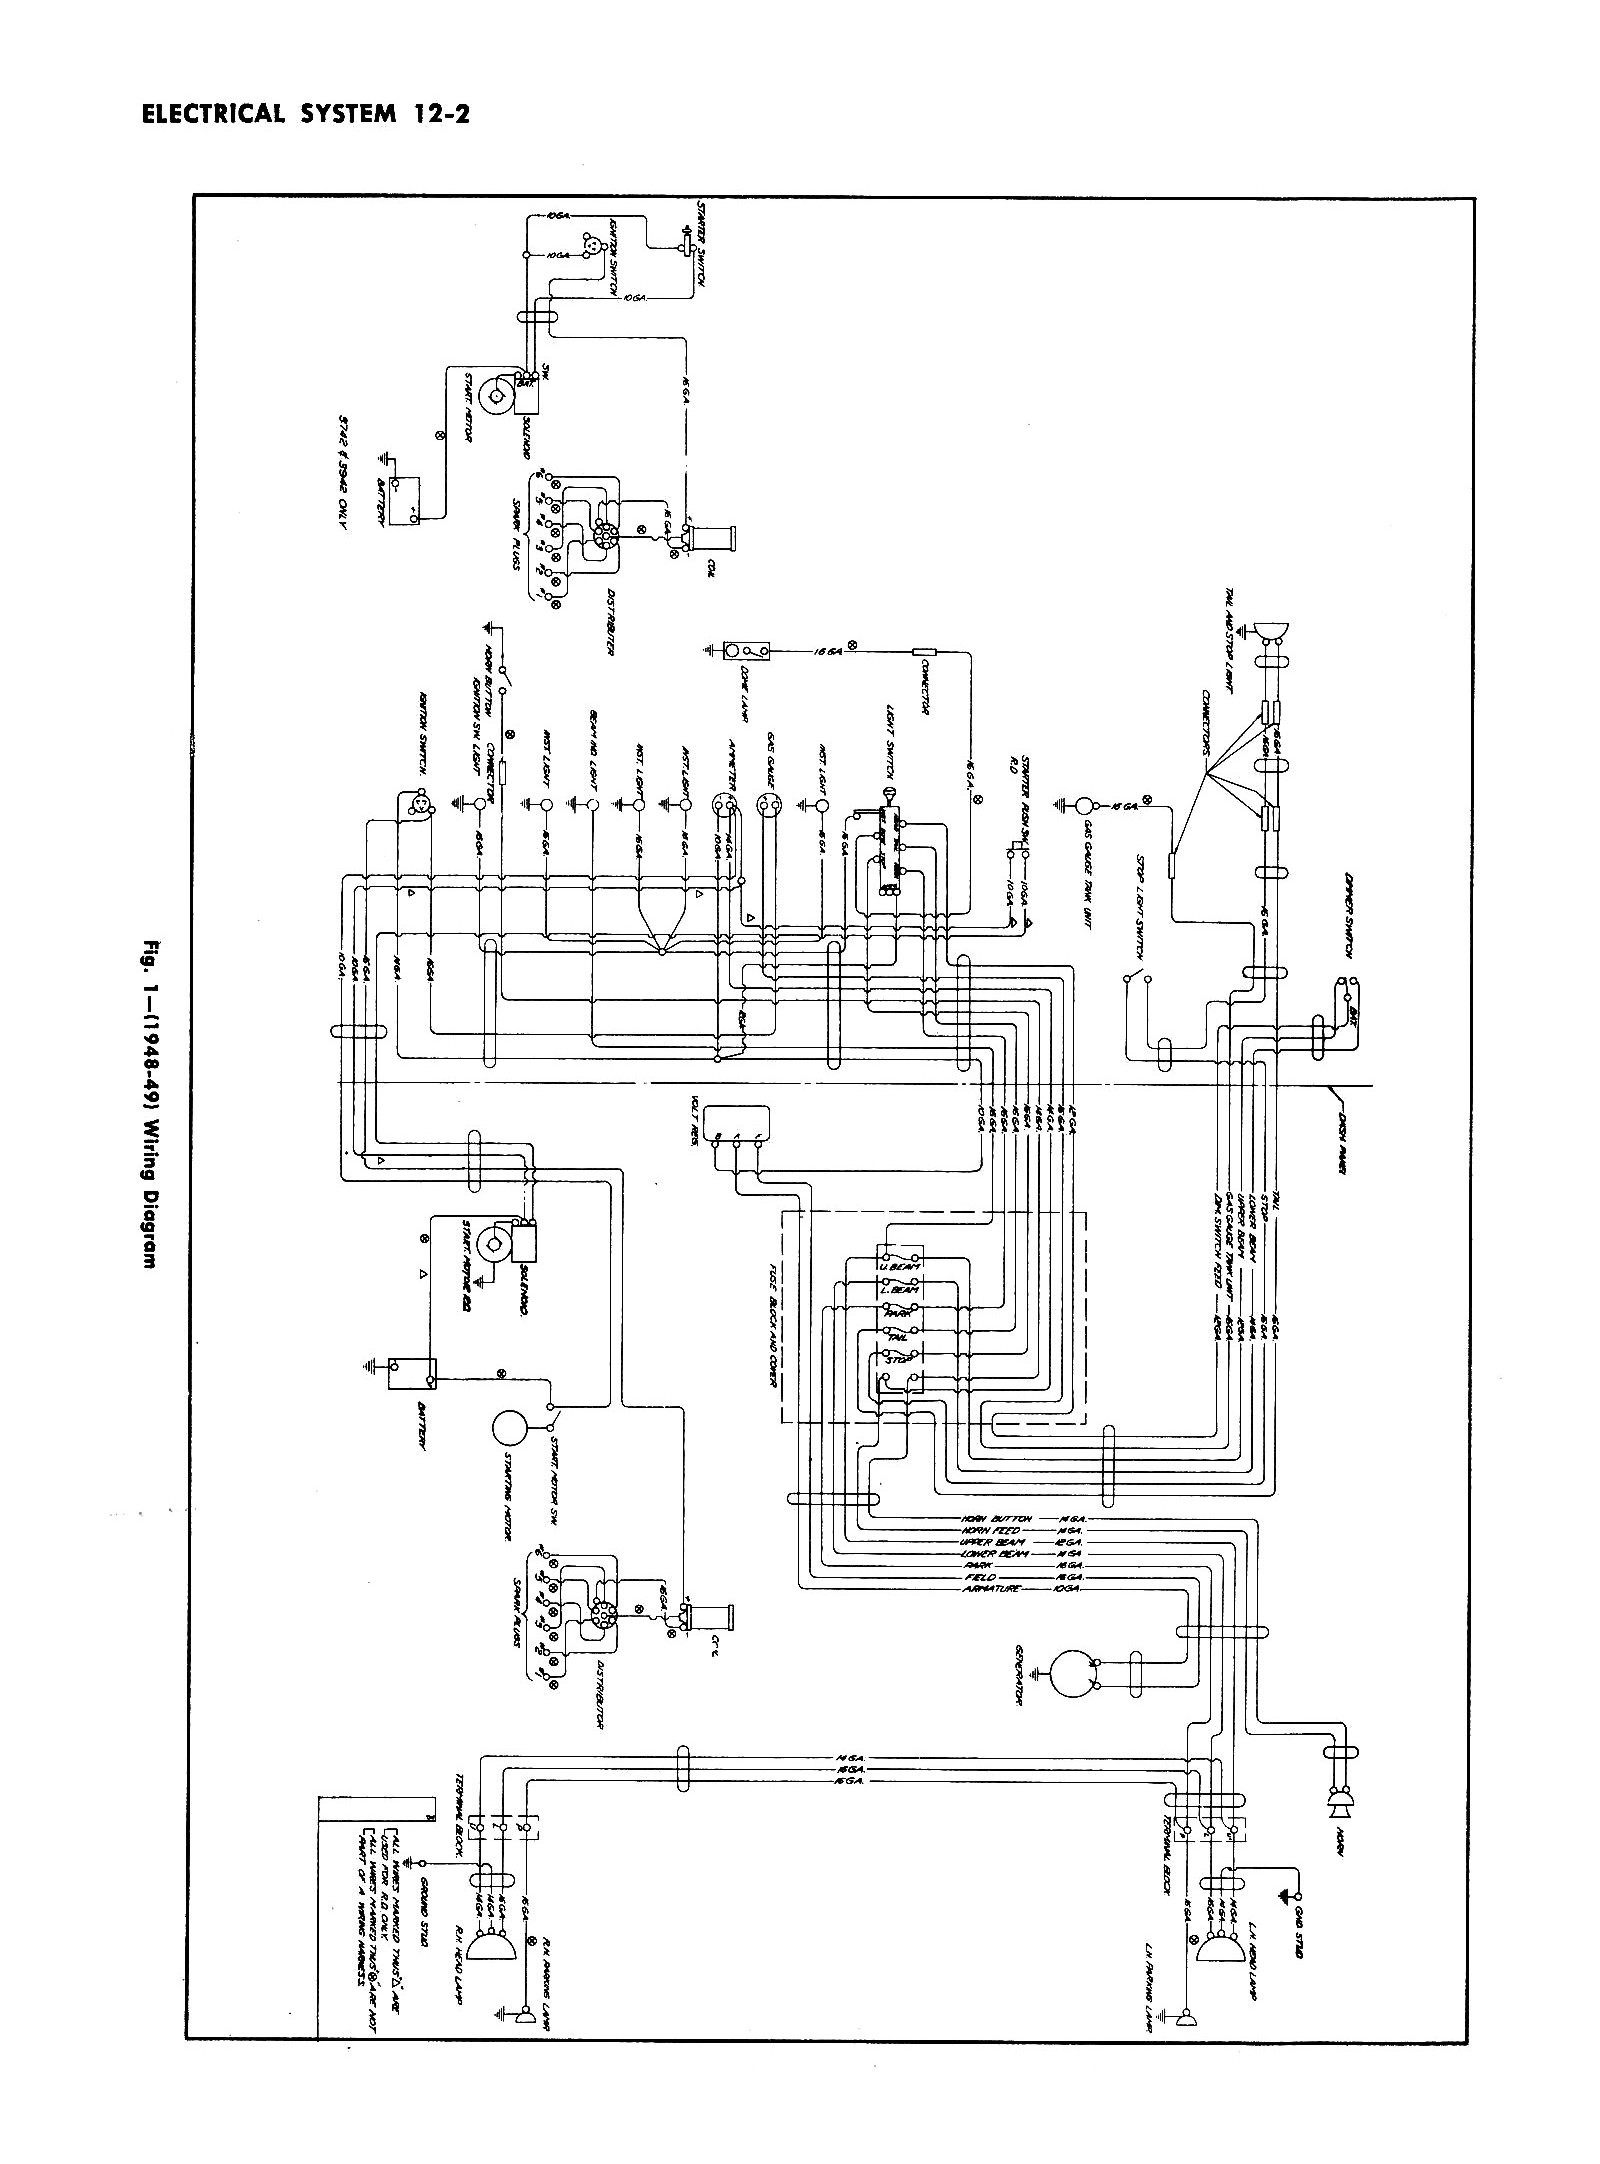 Chevy Wiring Diagrams Hardy Furnace Parts Diagram Free Download Schematic 1949 Truck